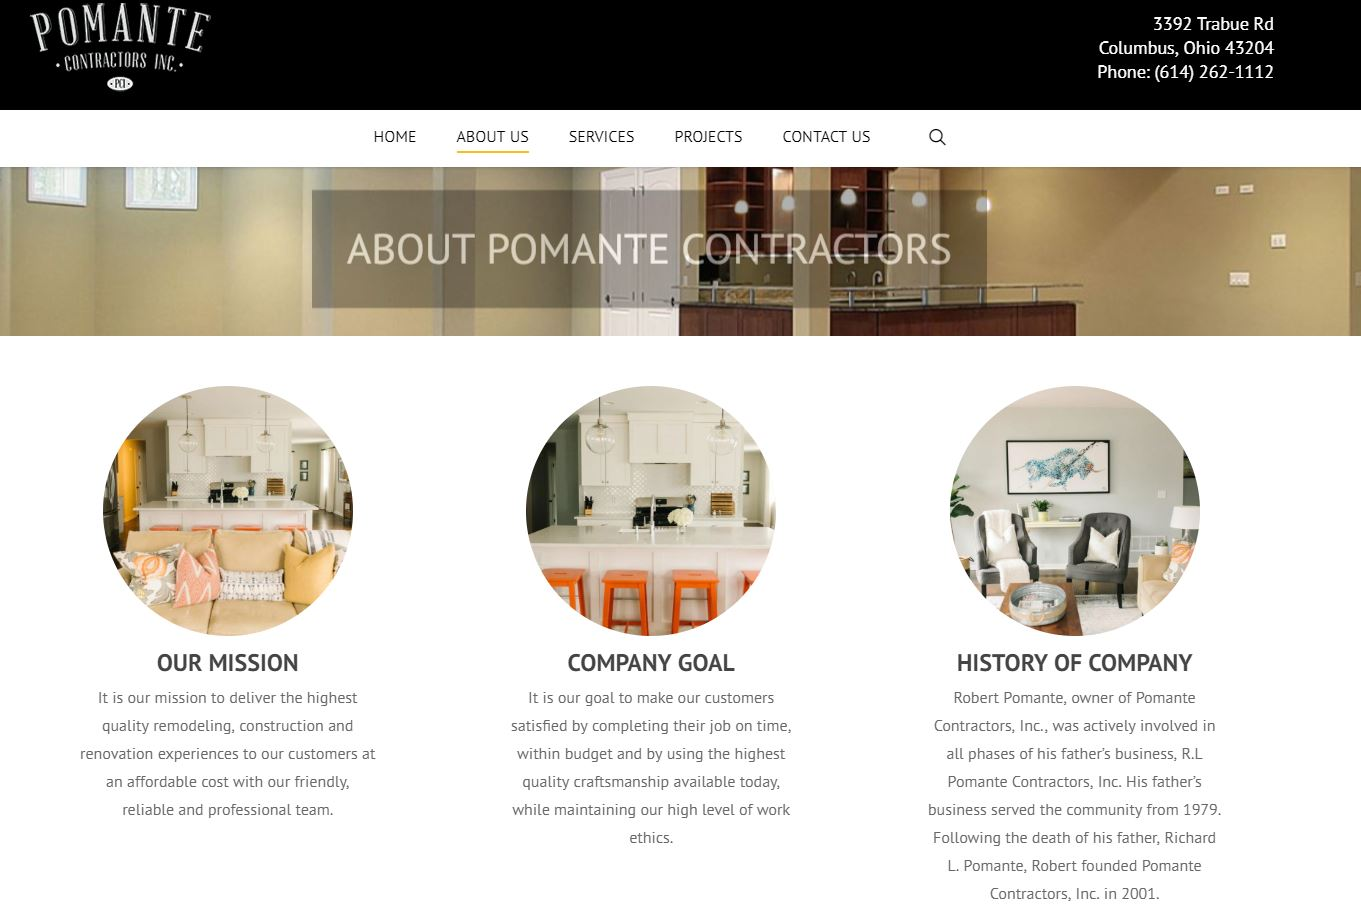 Pomante website about us page